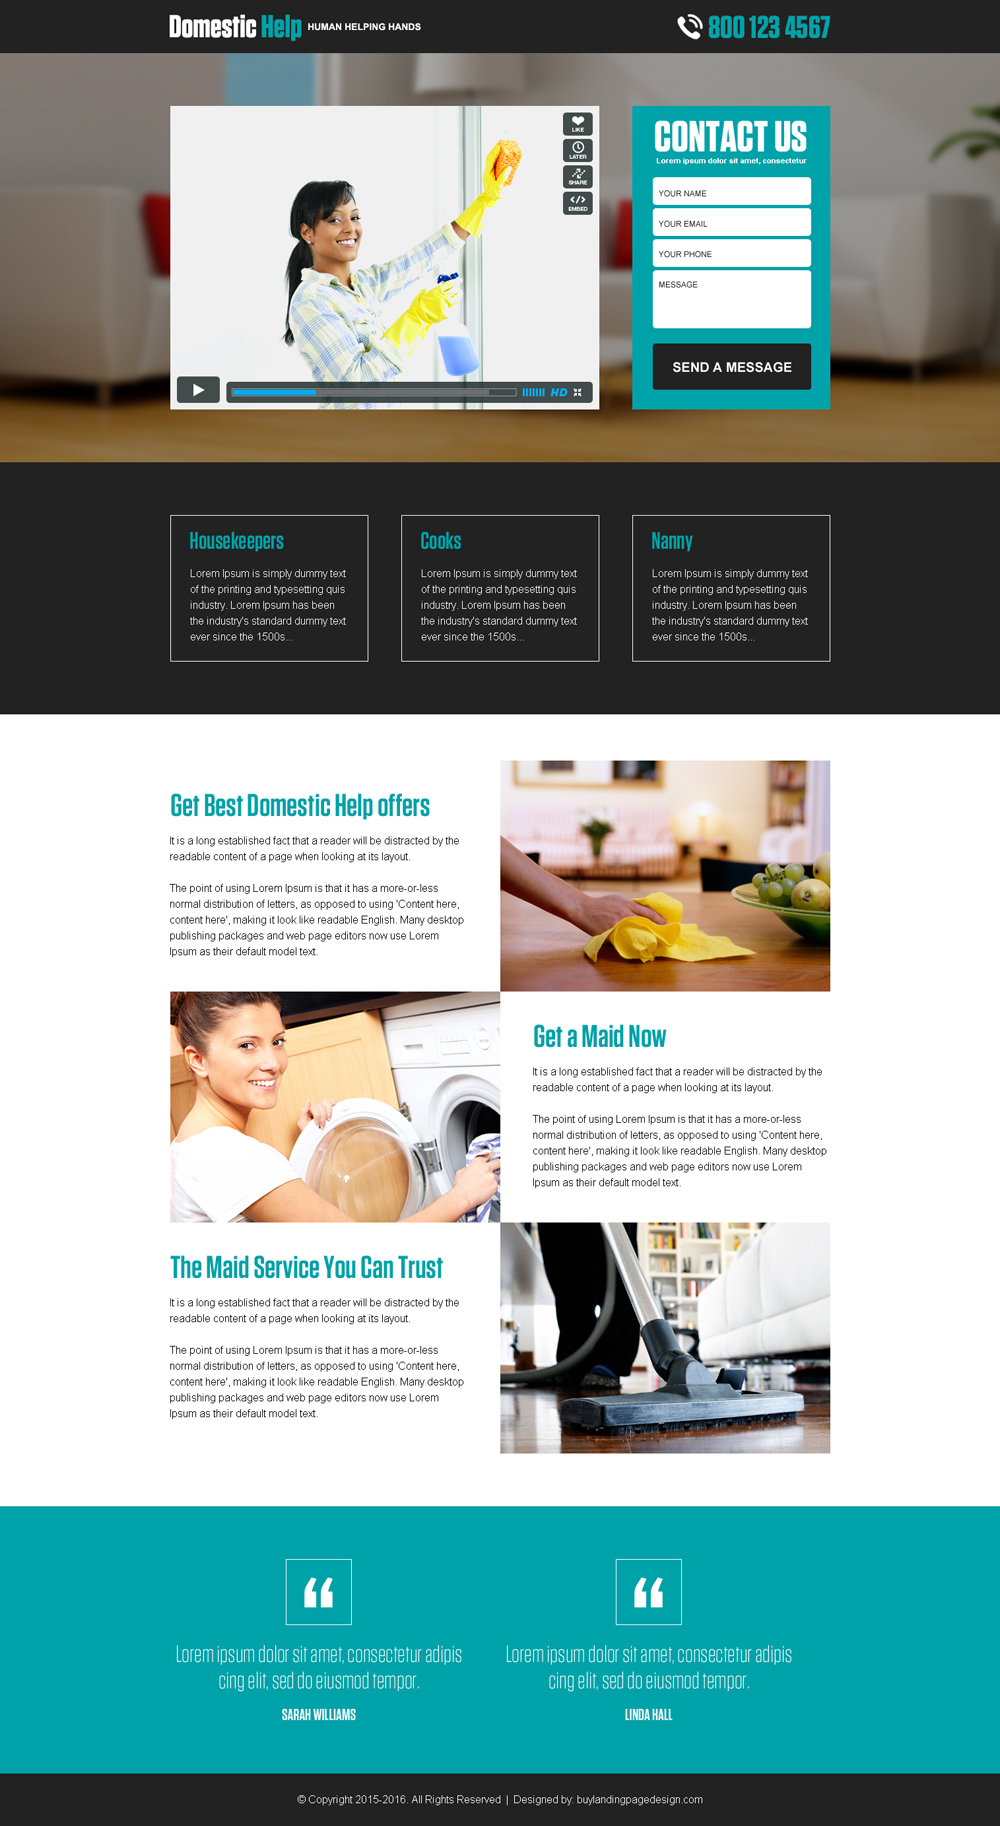 best-domestic-help-video-landing-page-design-to-generate-leads-002